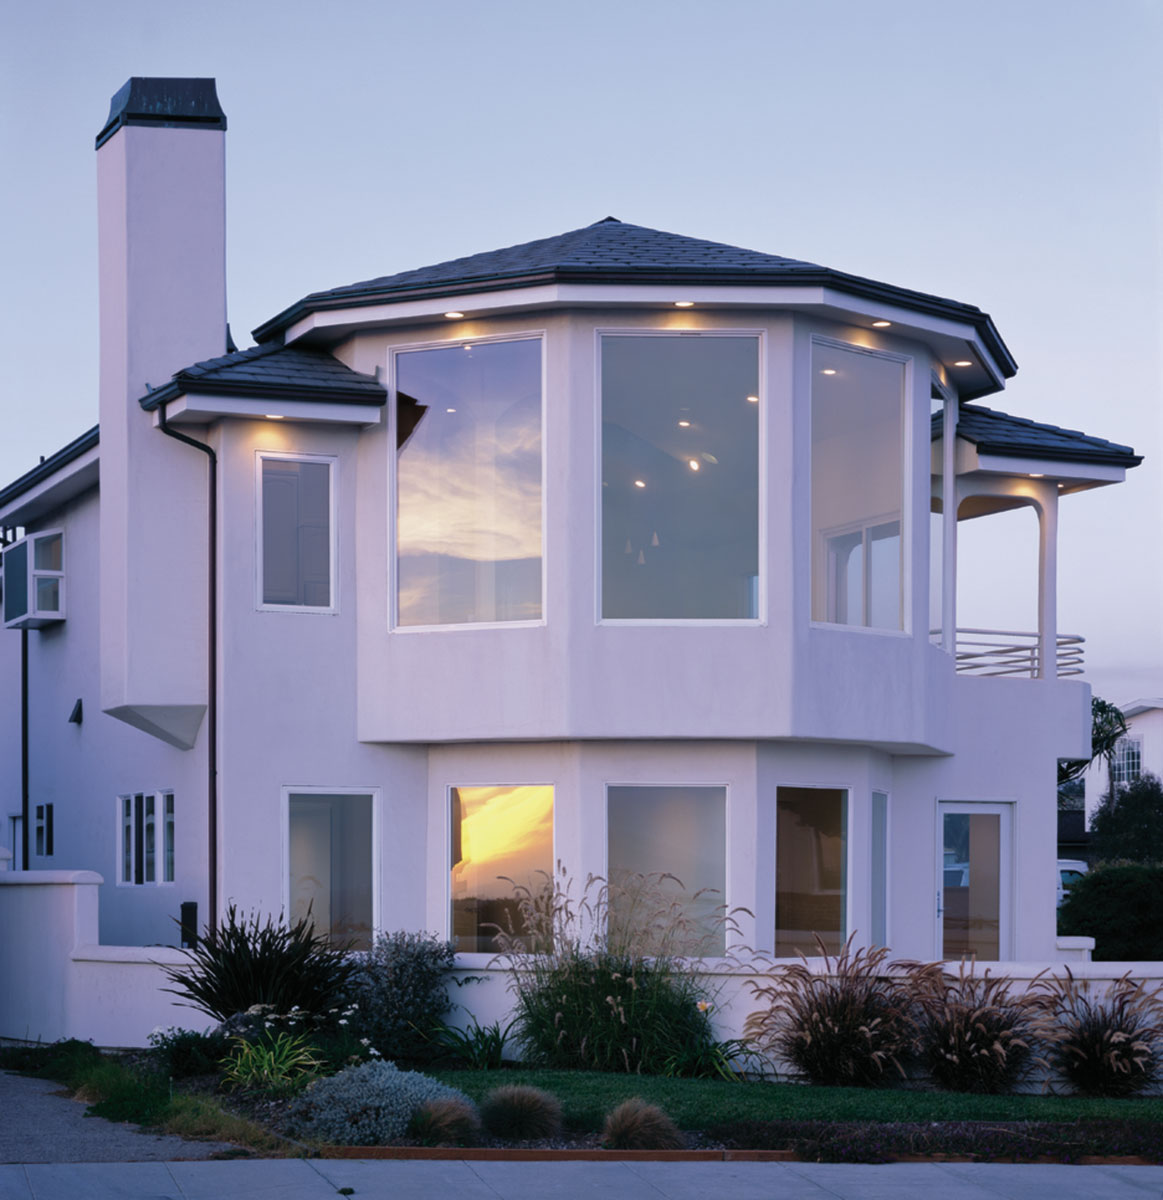 Amusing Design Of The Exterior Home Design Styles With White Wall Color Ideas Added With Big Glass Windows Ideas